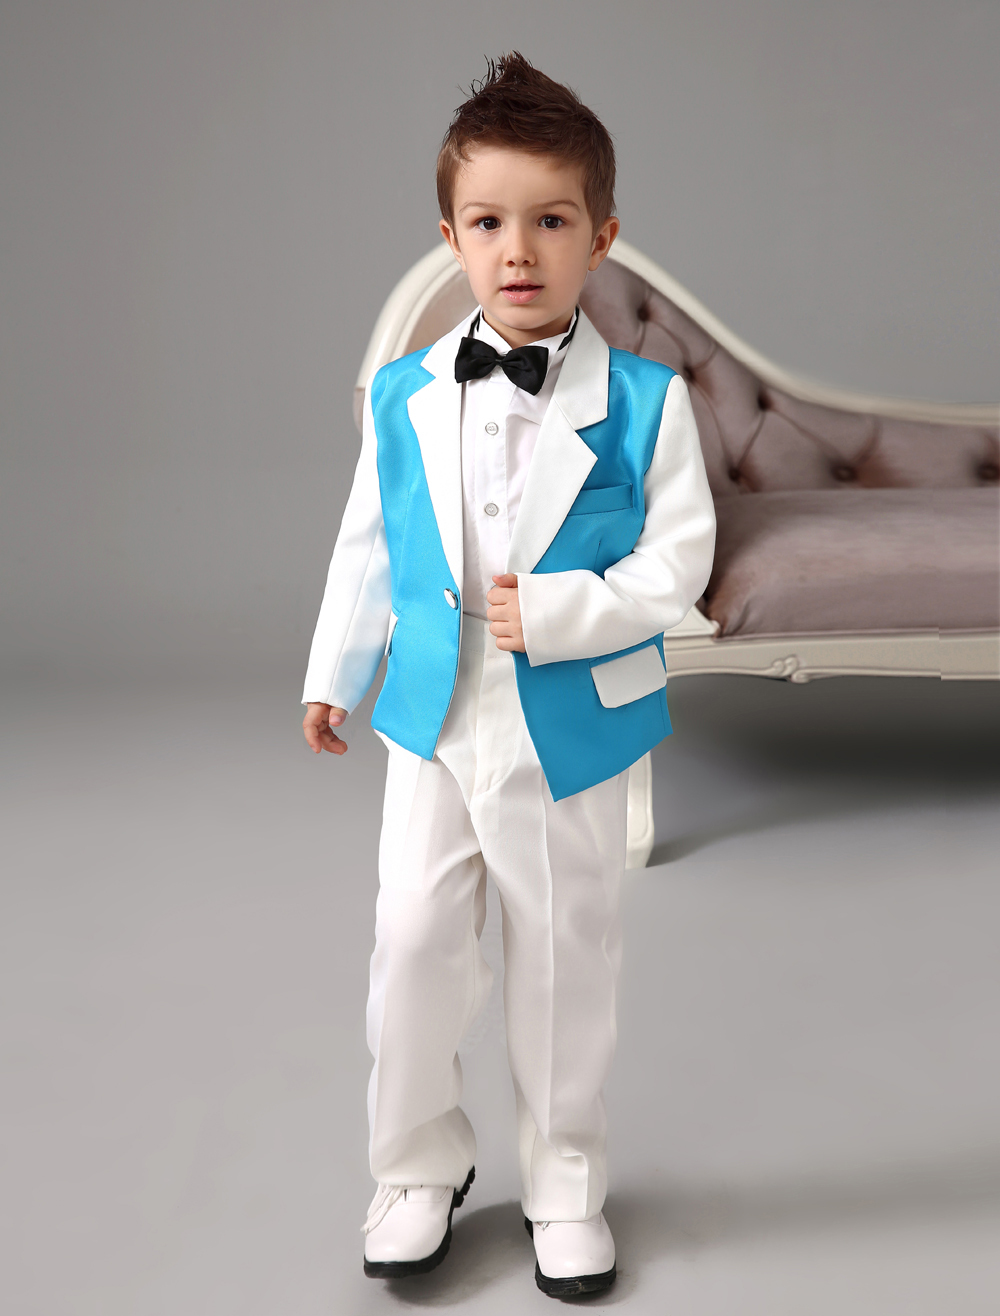 Four Pieces Luxurious formal blue and white boys suits Ring Bearer Suits kids Tuxedo With Black